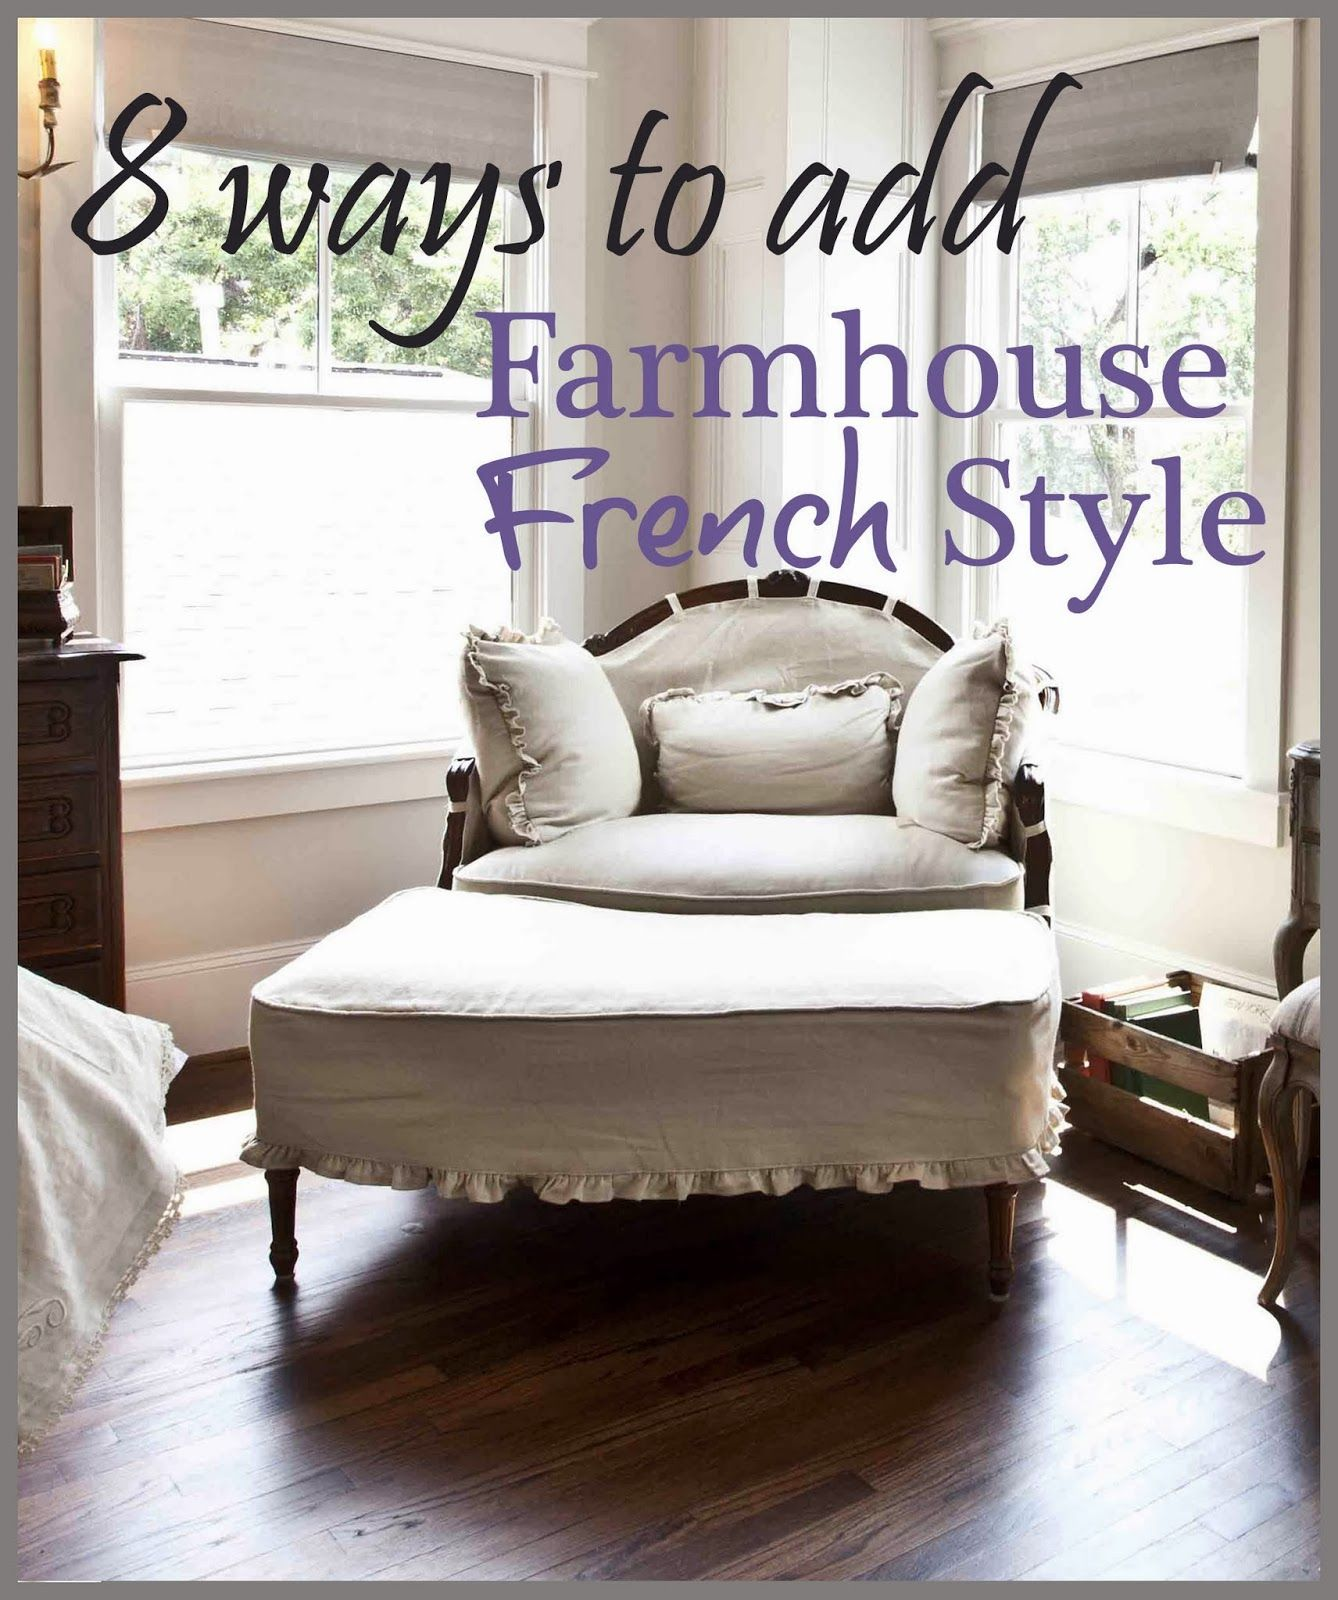 Budget Bedroom Decor: 8 Budget-friendly Ways To Add Farmhouse French To Your